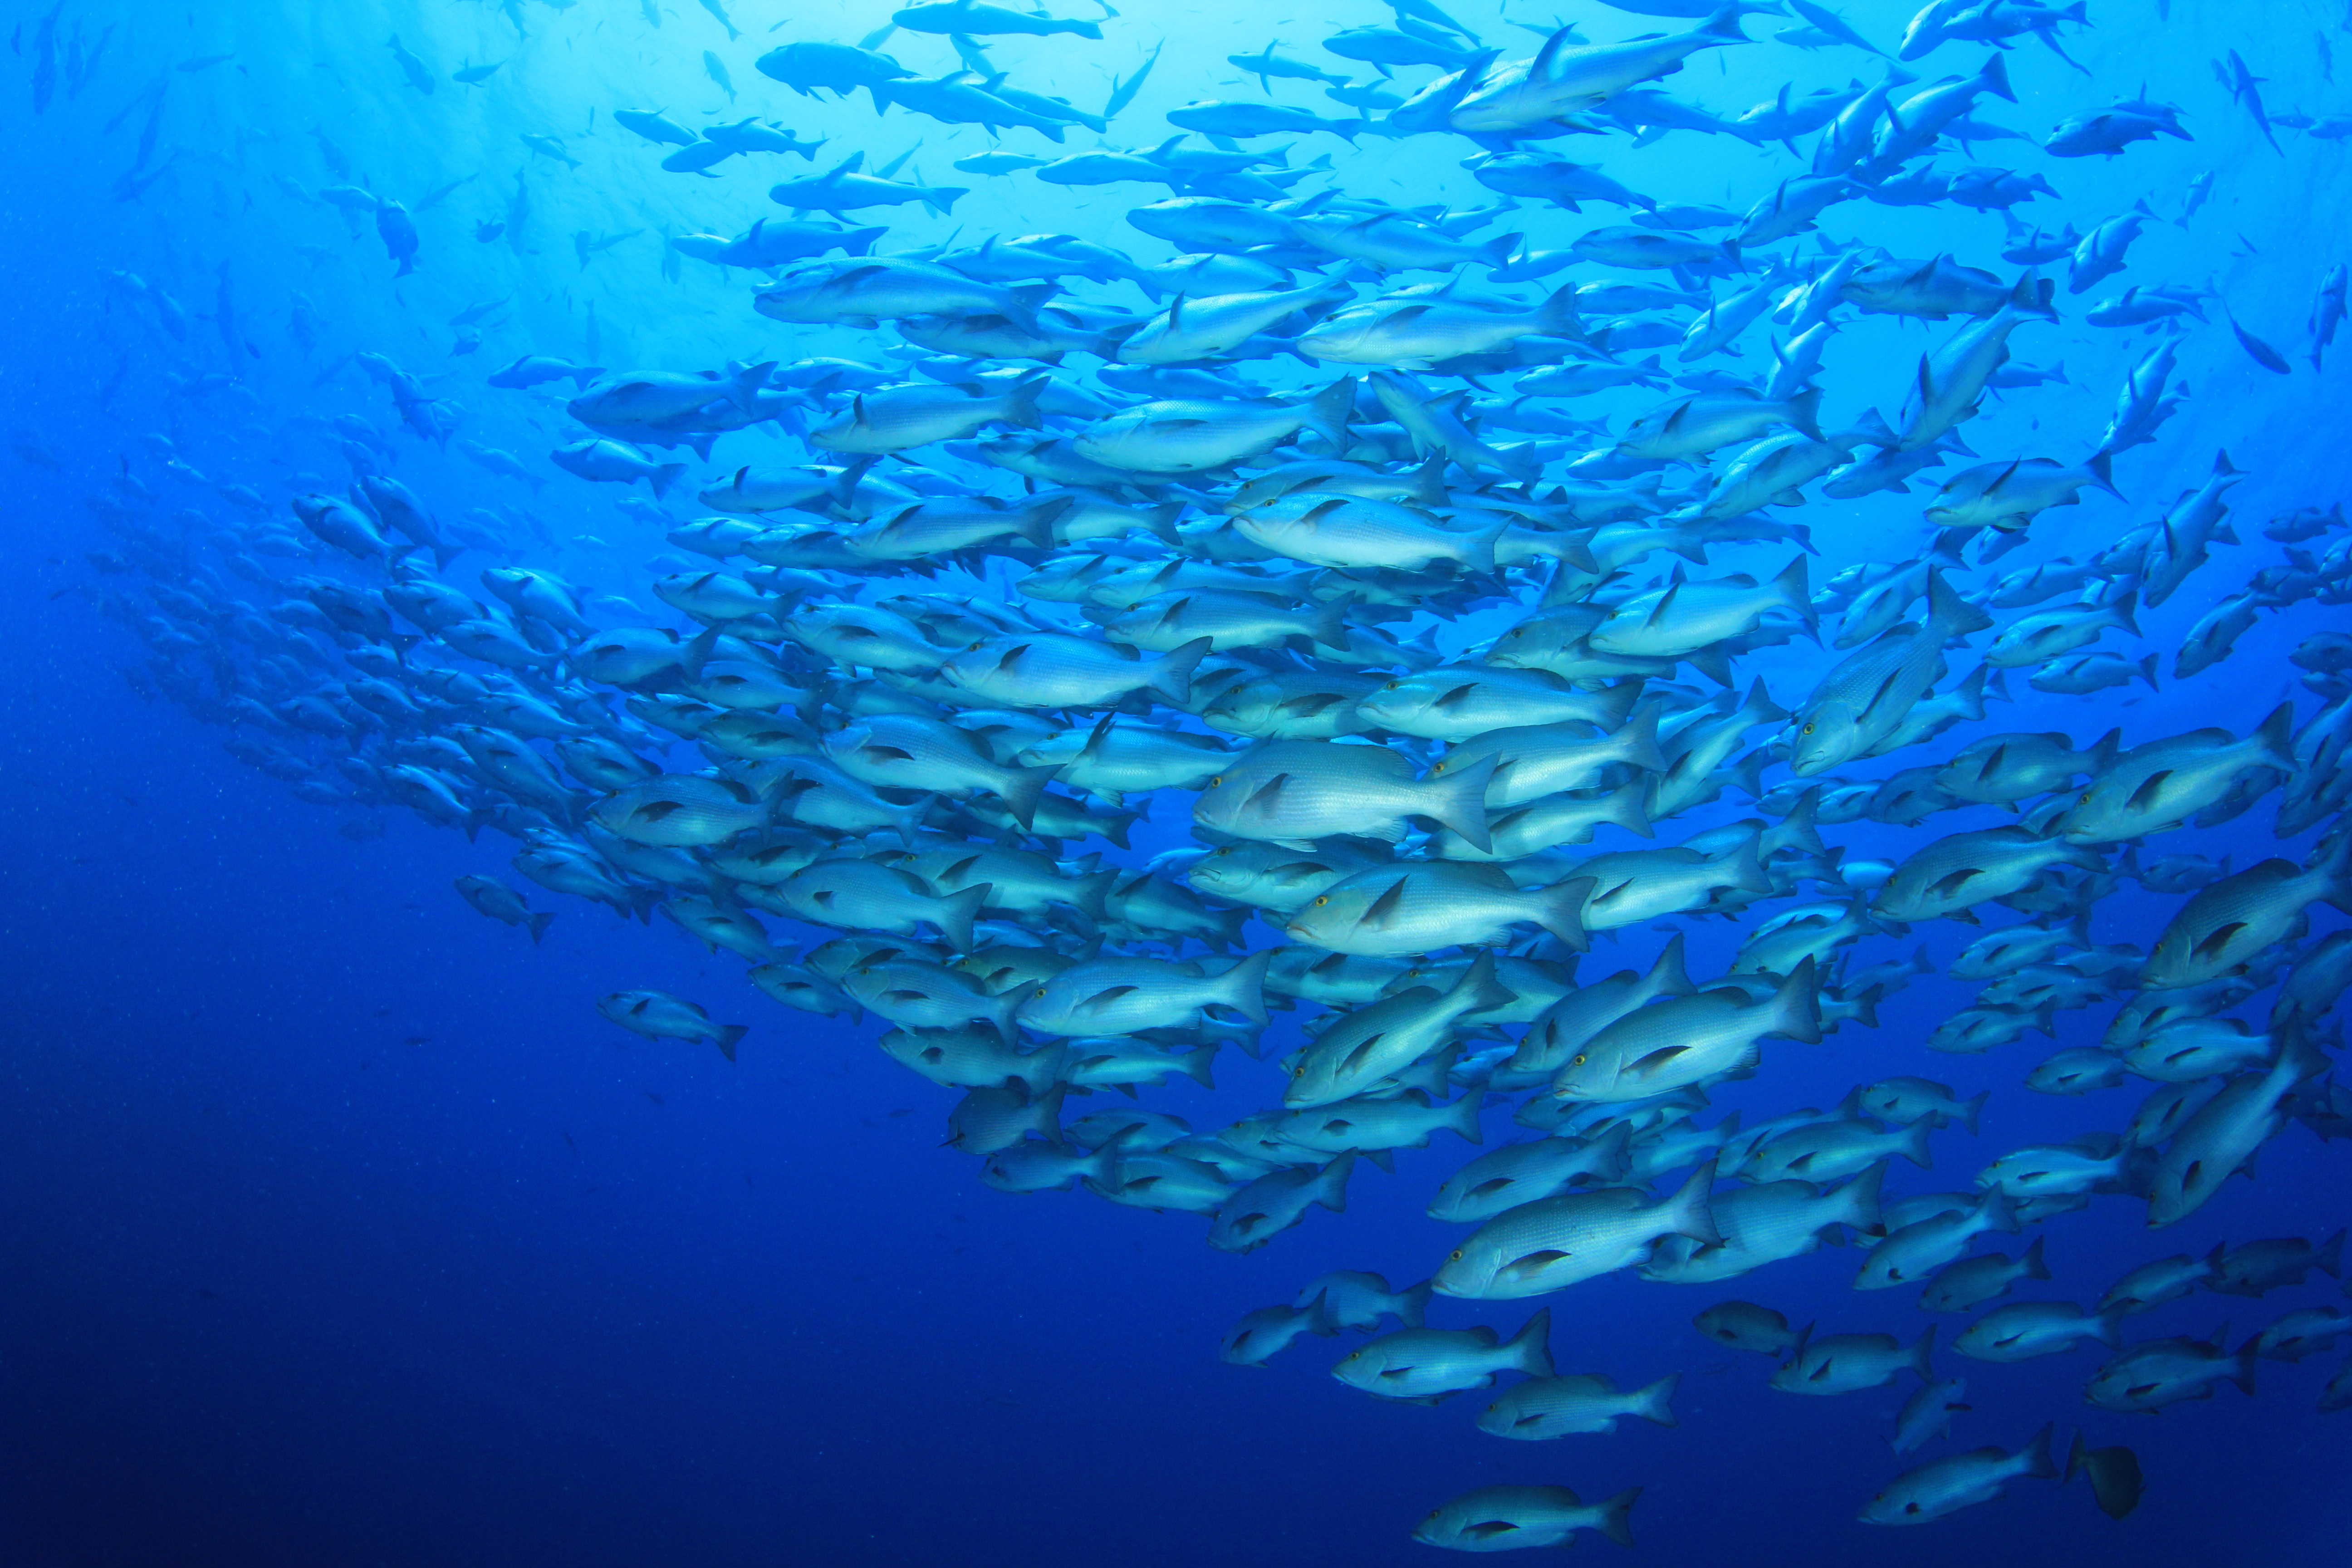 British Ecological Society image of shoal of fish